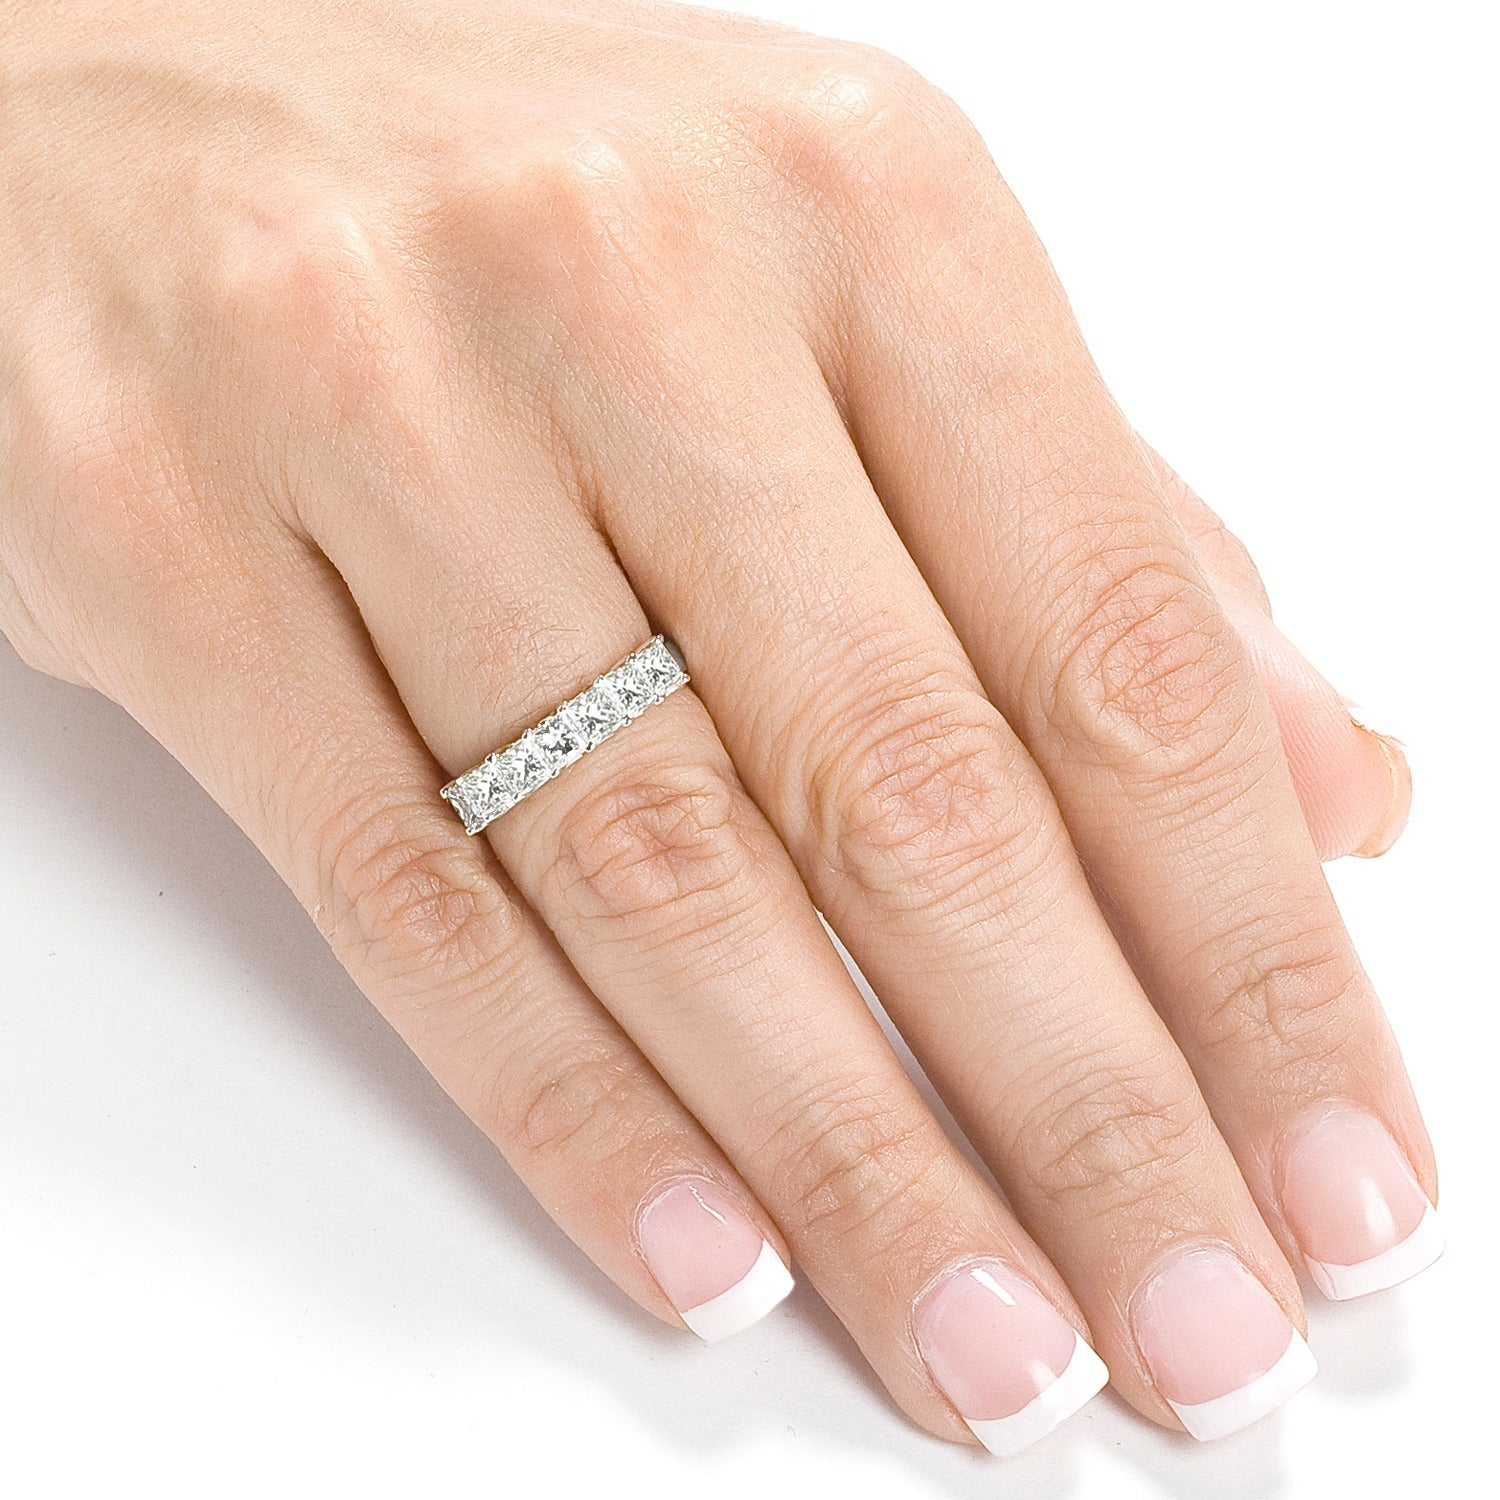 hand engagement yg oval diamond casey lady s ladys slipper white ring melanie products